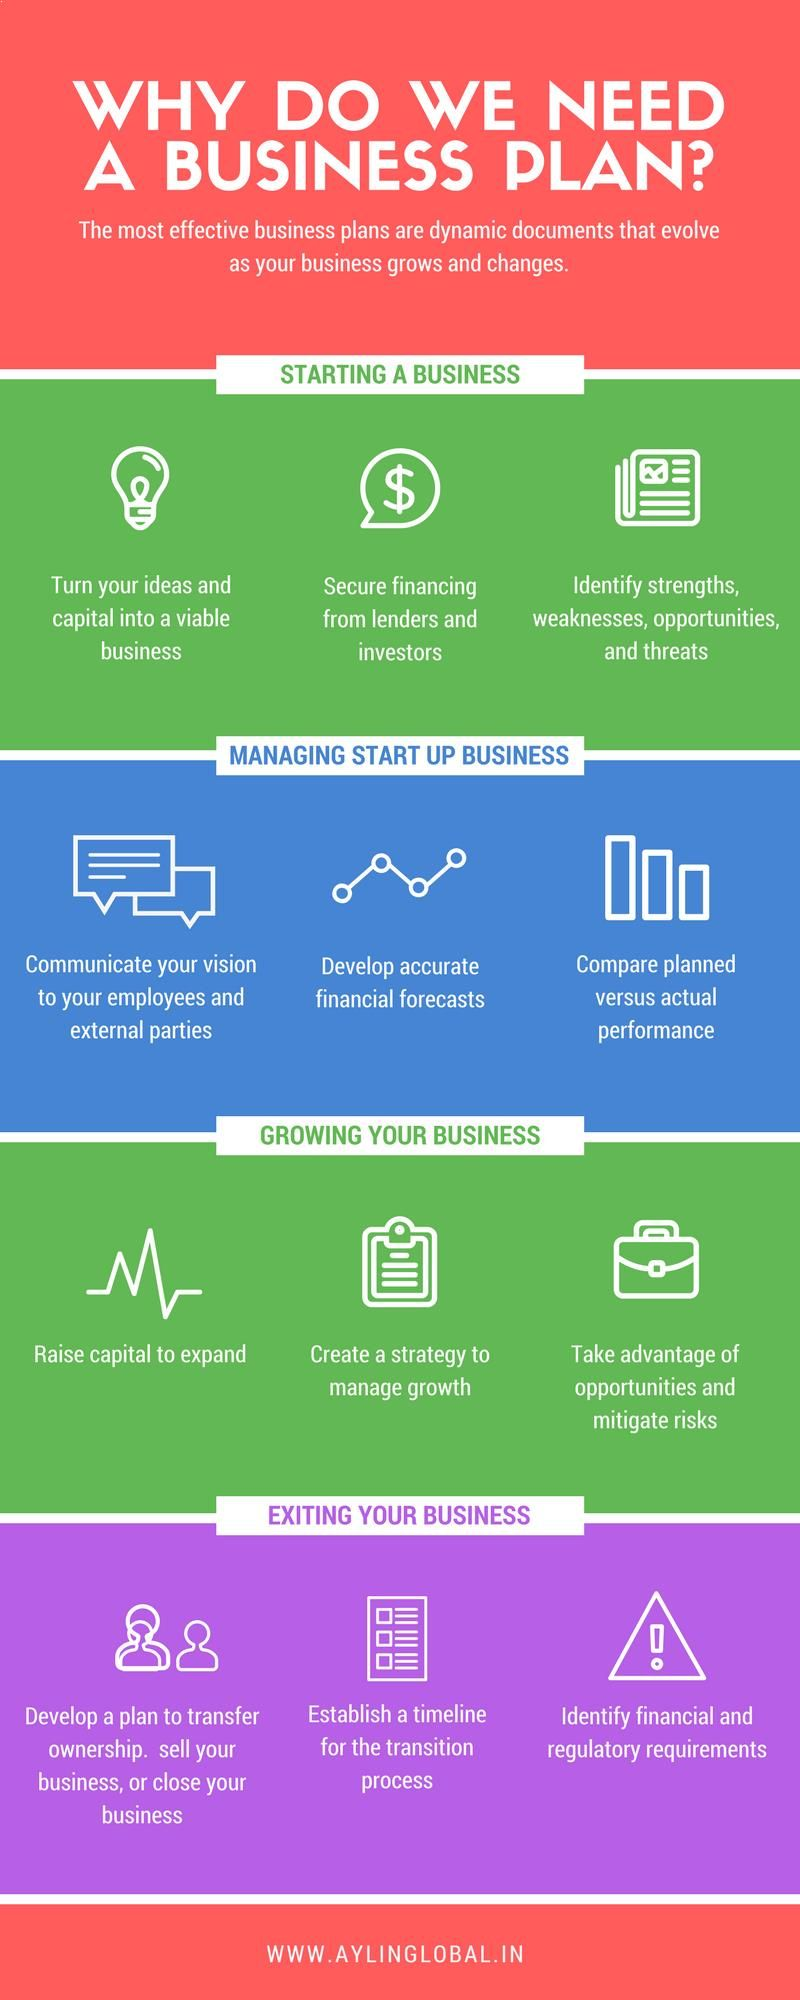 Business plan template free aylin global pinterest business business plan template free cheaphphosting Images